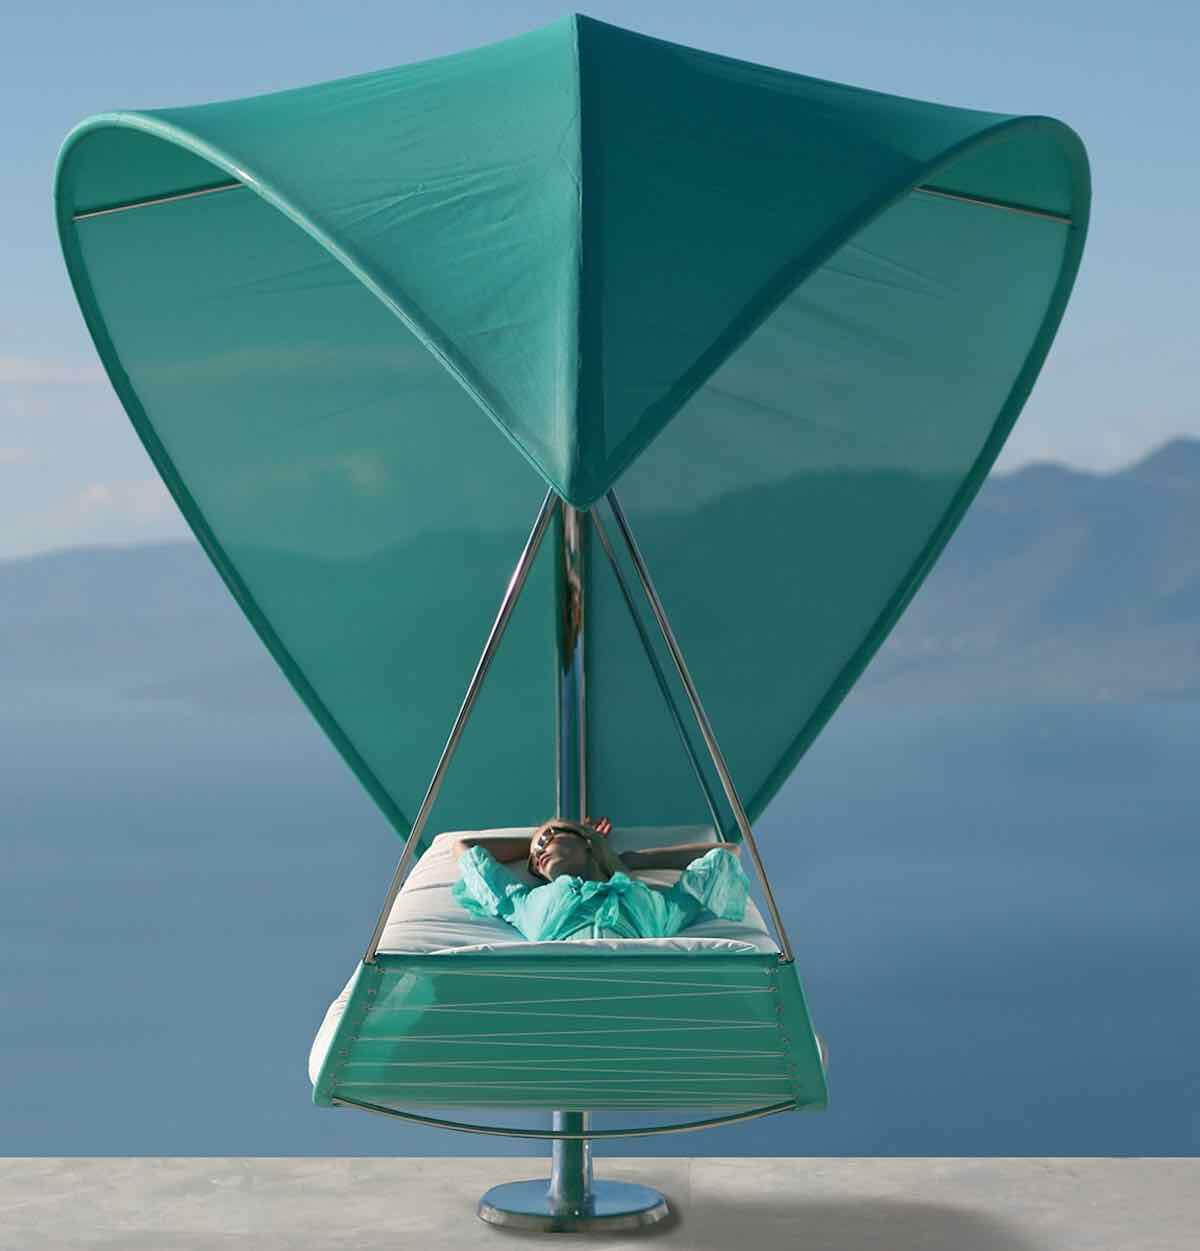 PATIO SET WITH UMBRELLA IDEAS WAVE HAMMOCK BY ERIK NYBERG AND GUSTAV STORM FOR ROYAL BOTANIA